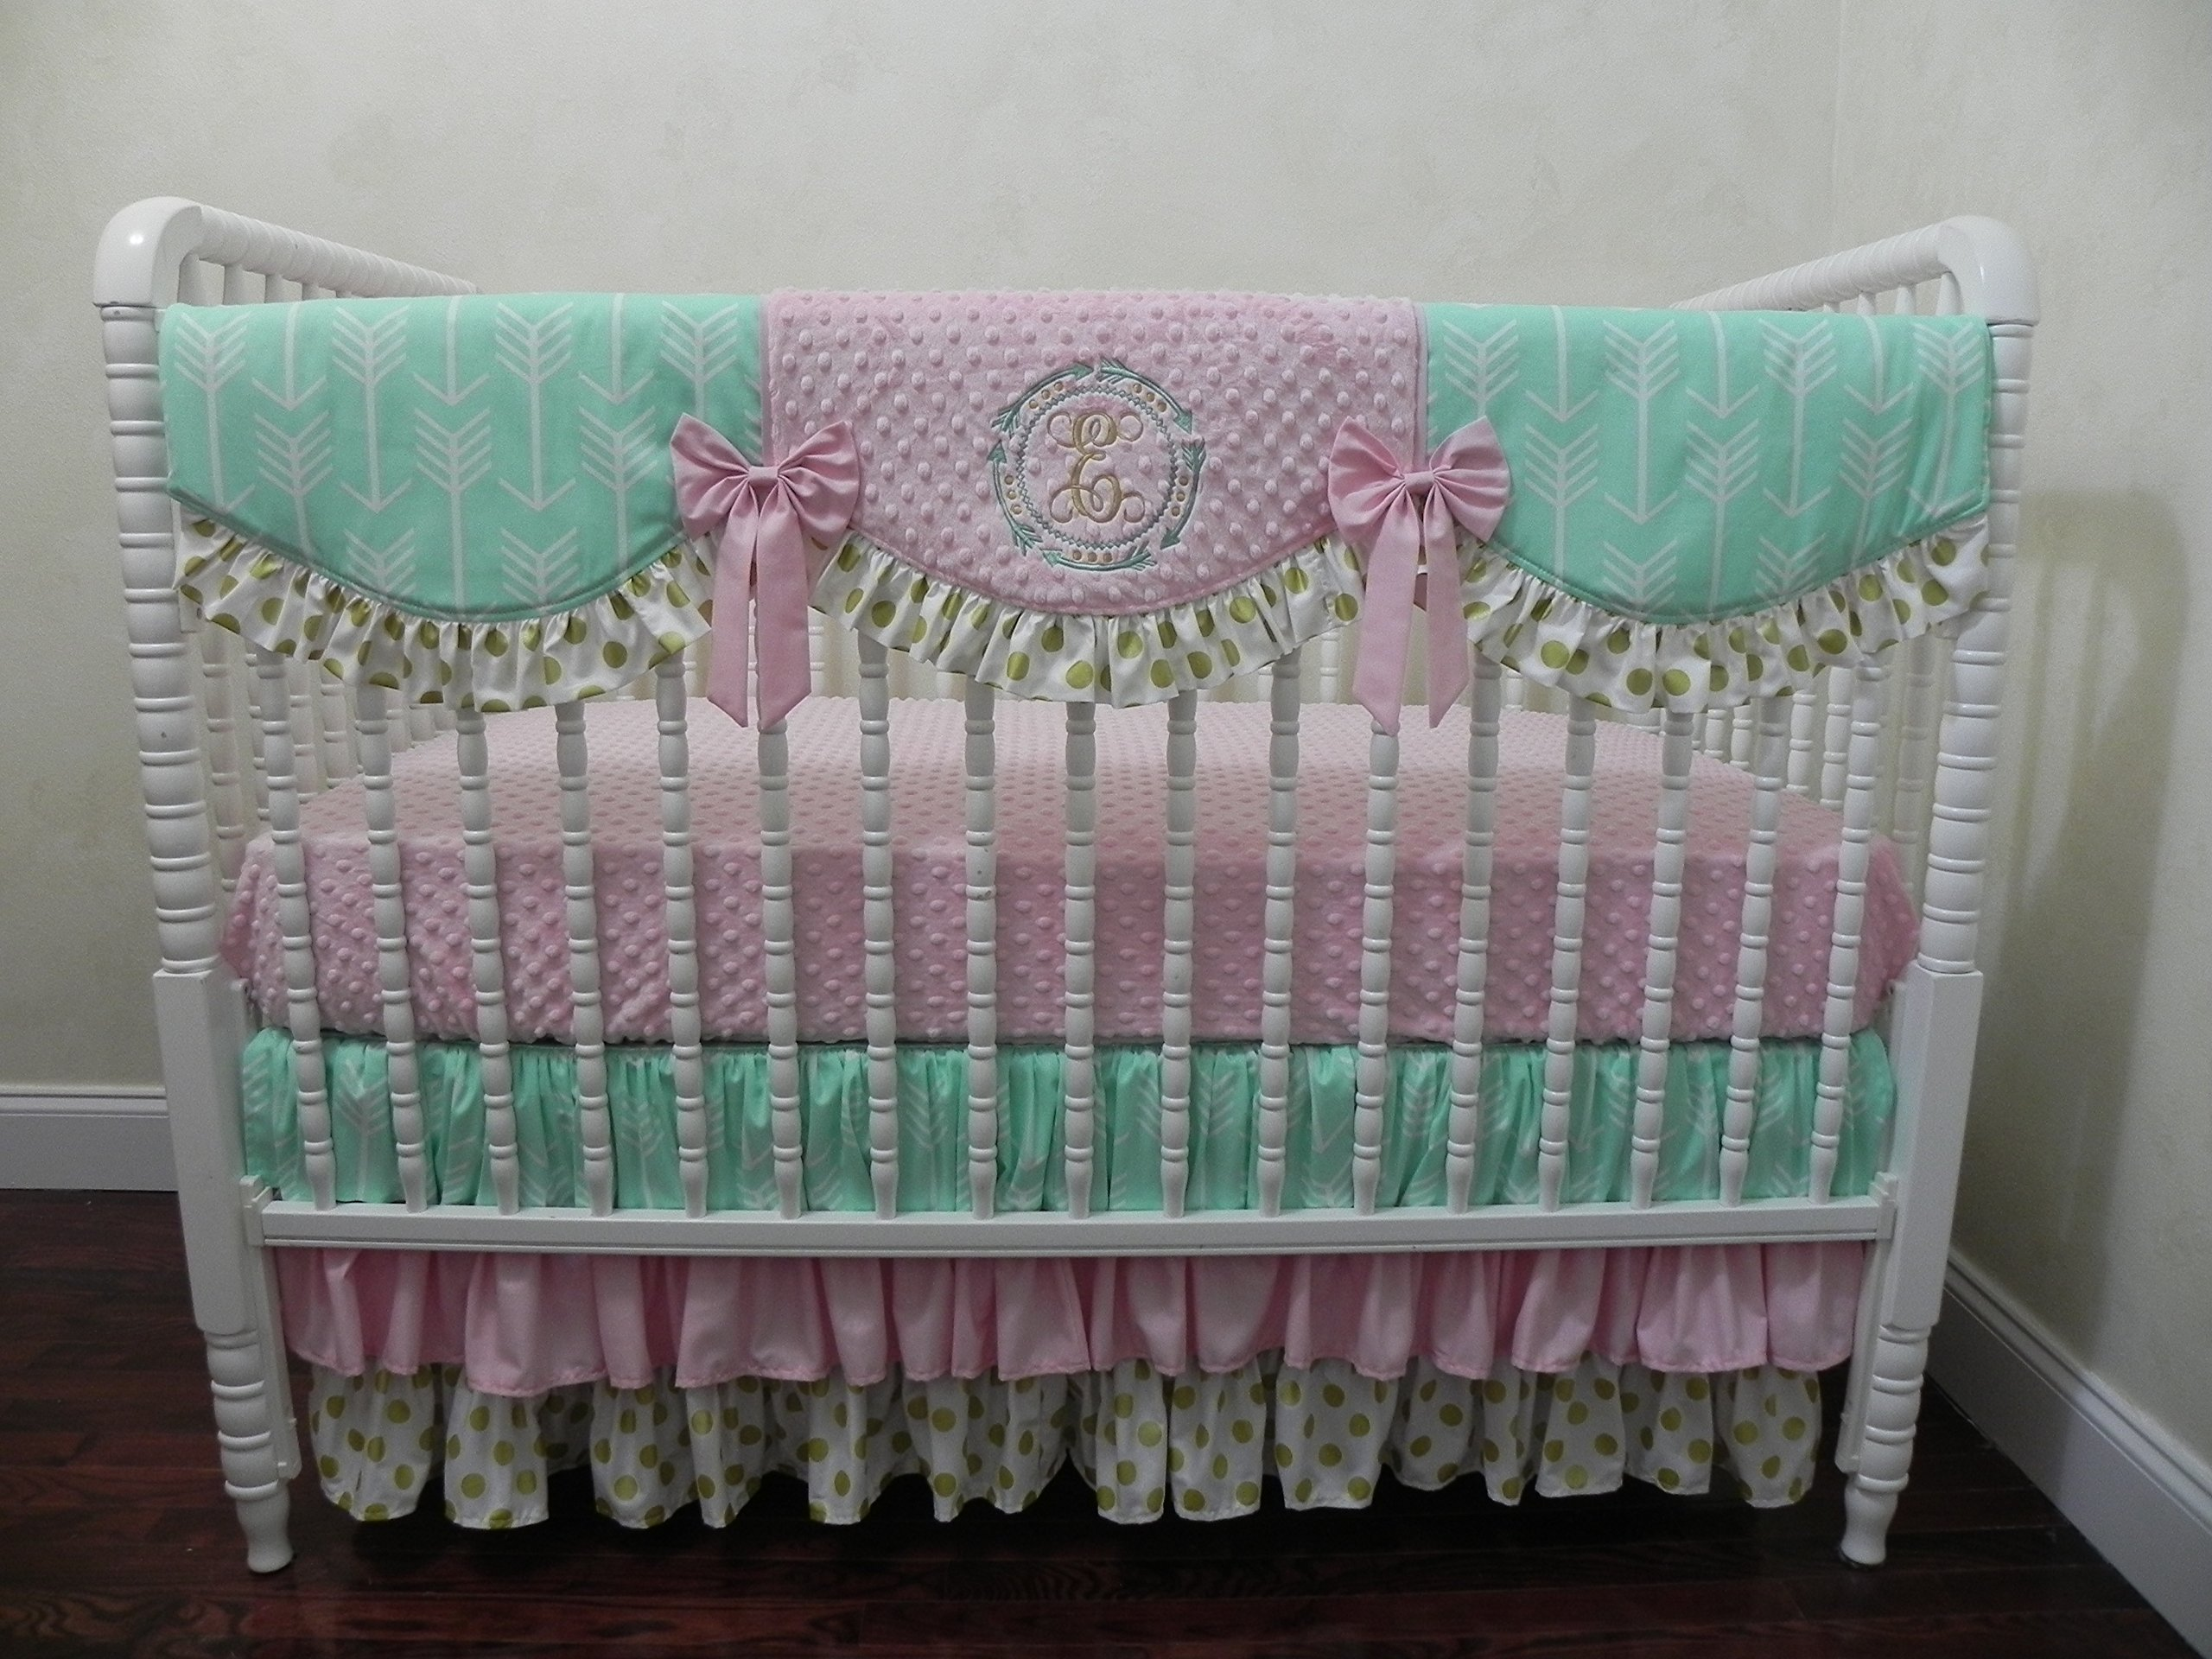 Nursery Bedding, Baby Girl Crib Bedding Set Lucca, Crib Bedding with Mint Arrows, Gold Dots, and Light Pink, Scalloped Crib Rail Cover, Three Tiered Crib Skirt , 1 - 4 pieces